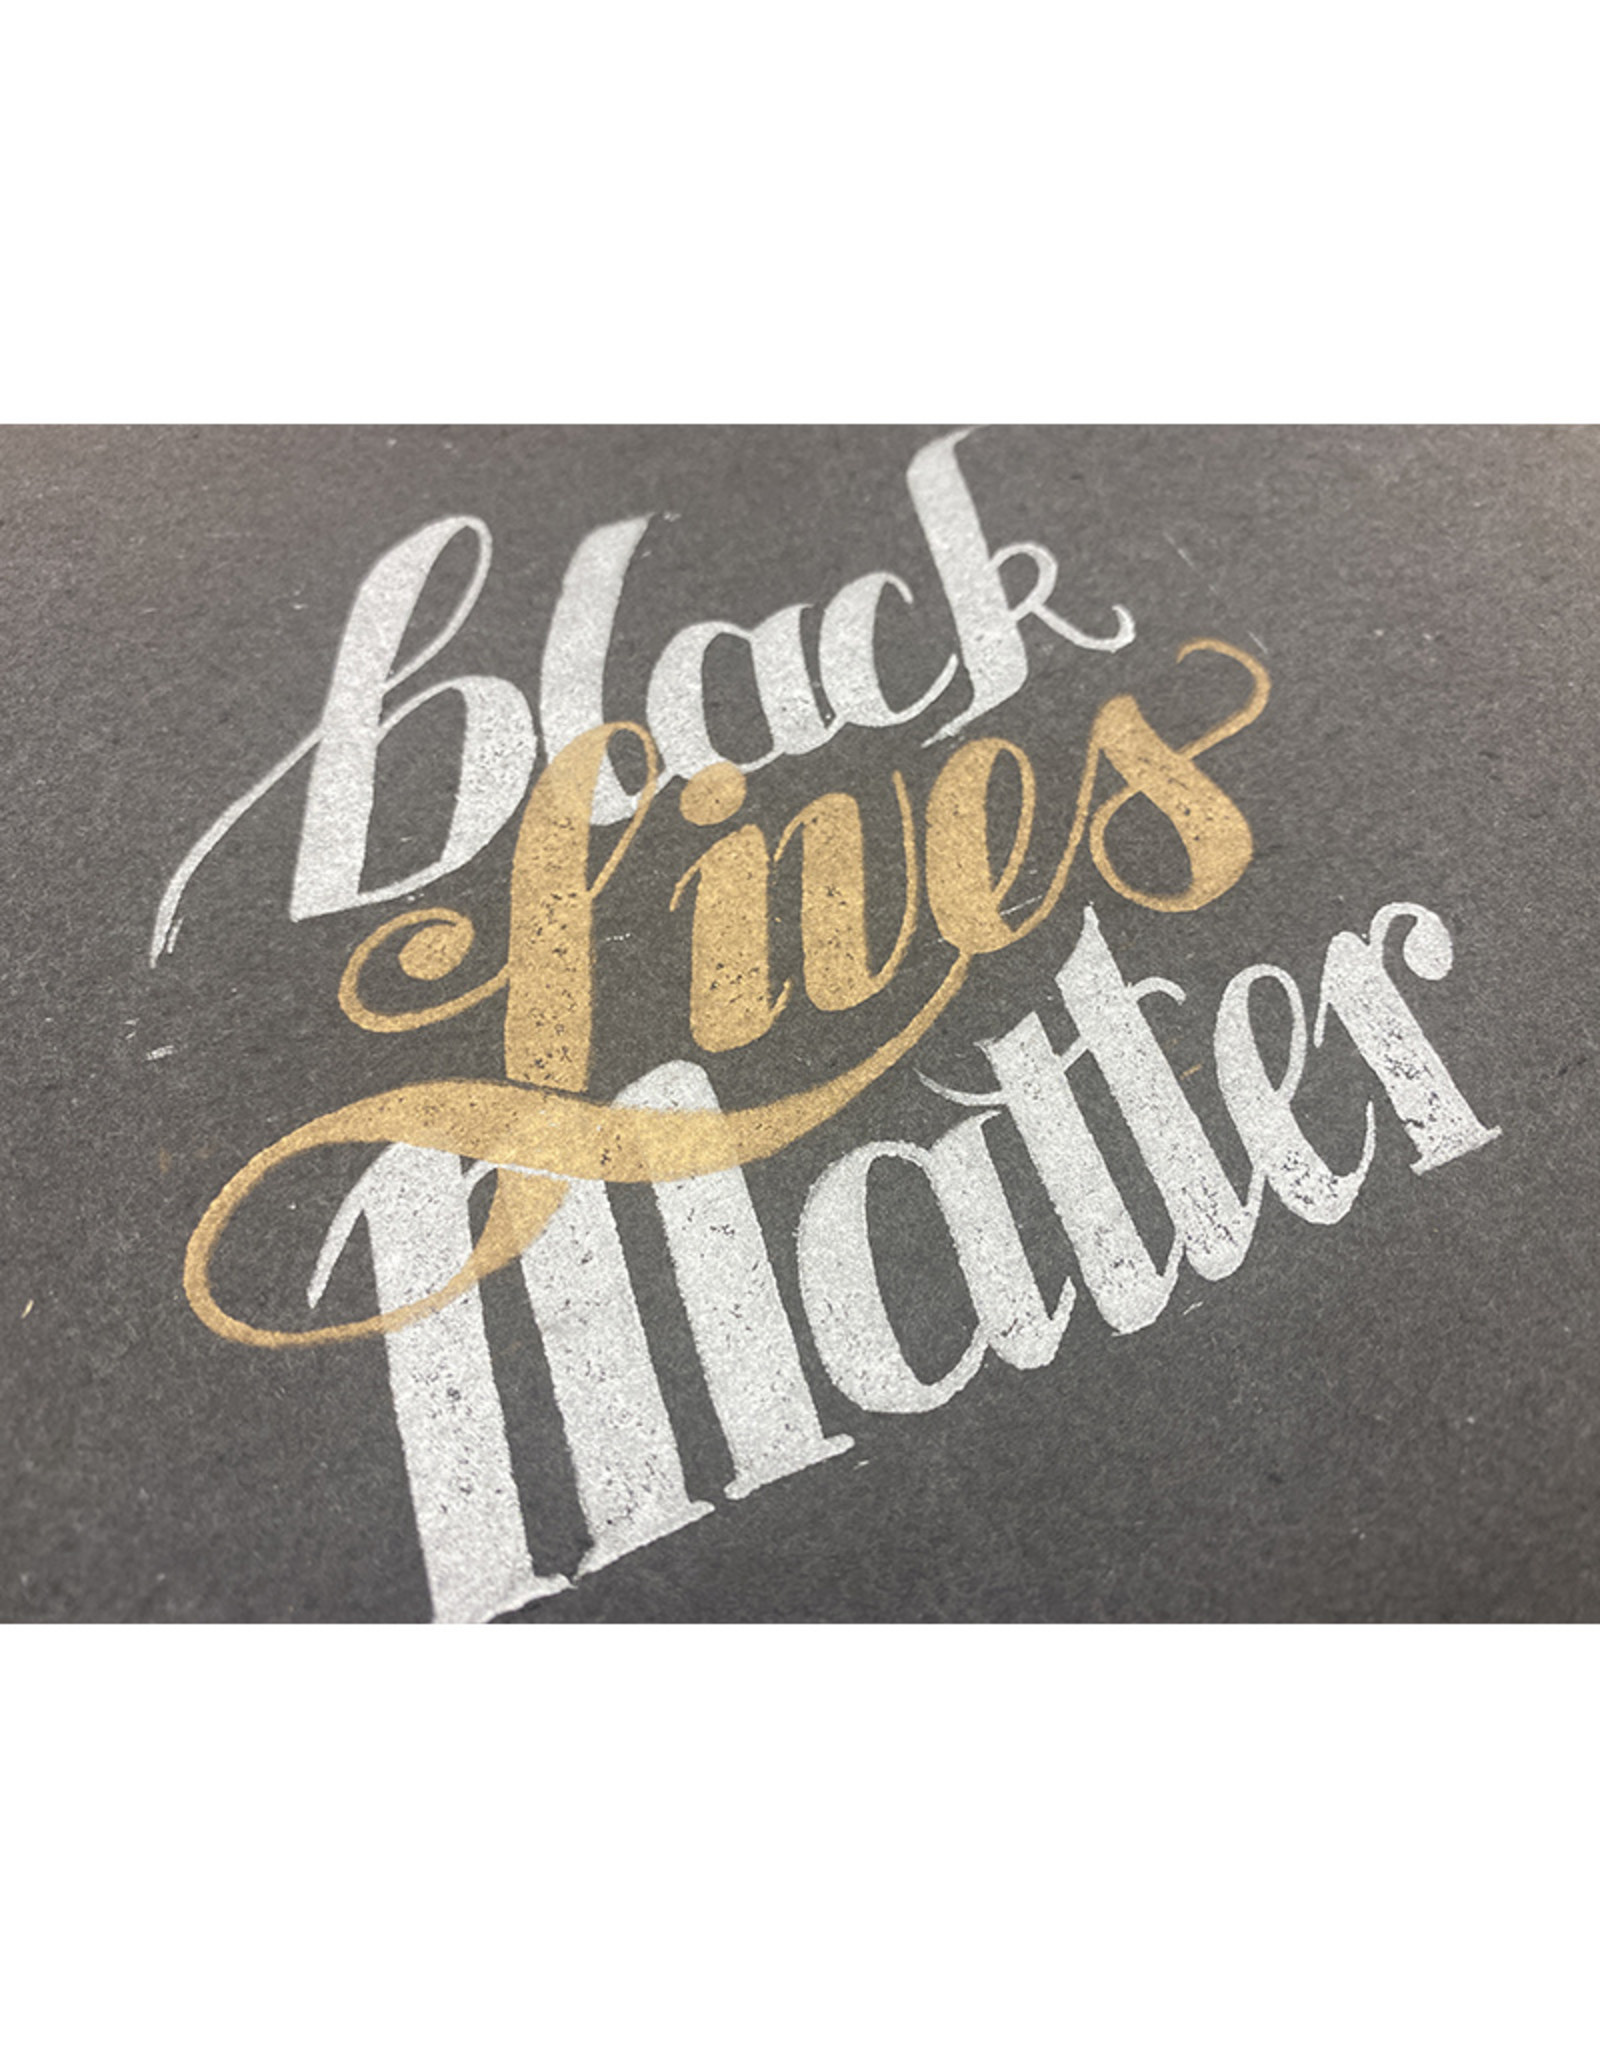 Janellabee Studio Black Lives Matter Block Print by Janellabee Studio